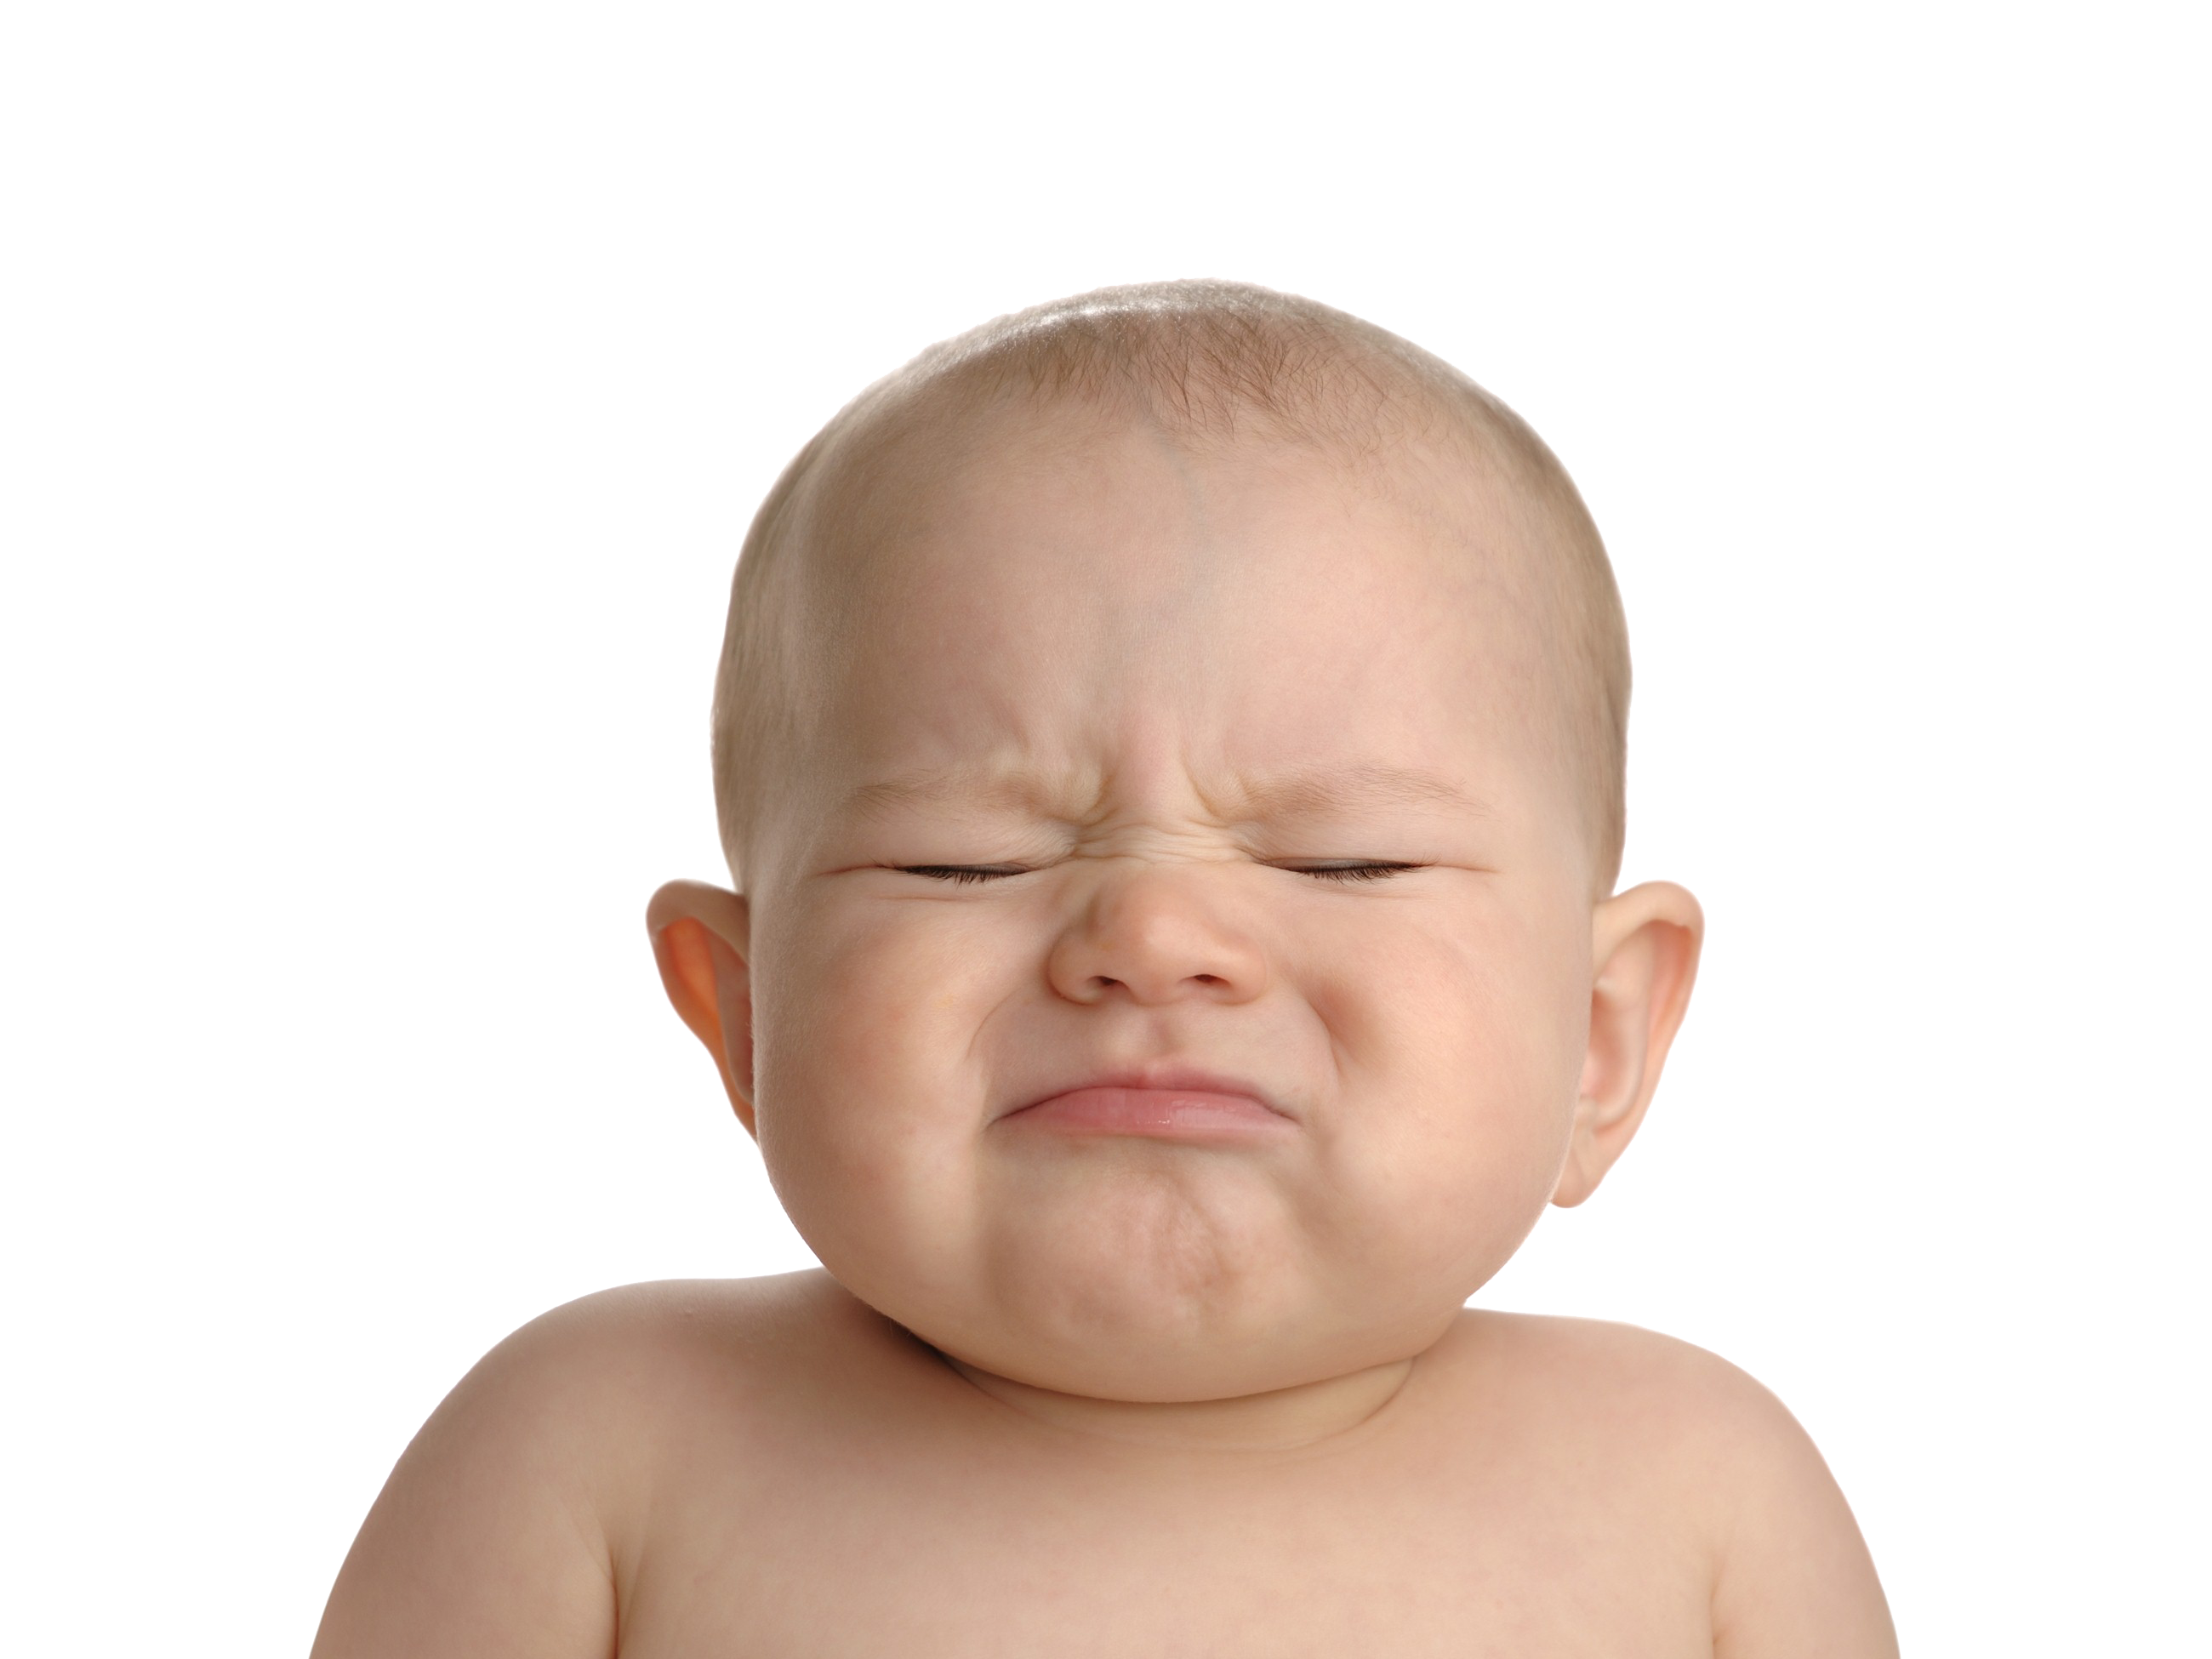 Kid crying png. Baby image with transparent